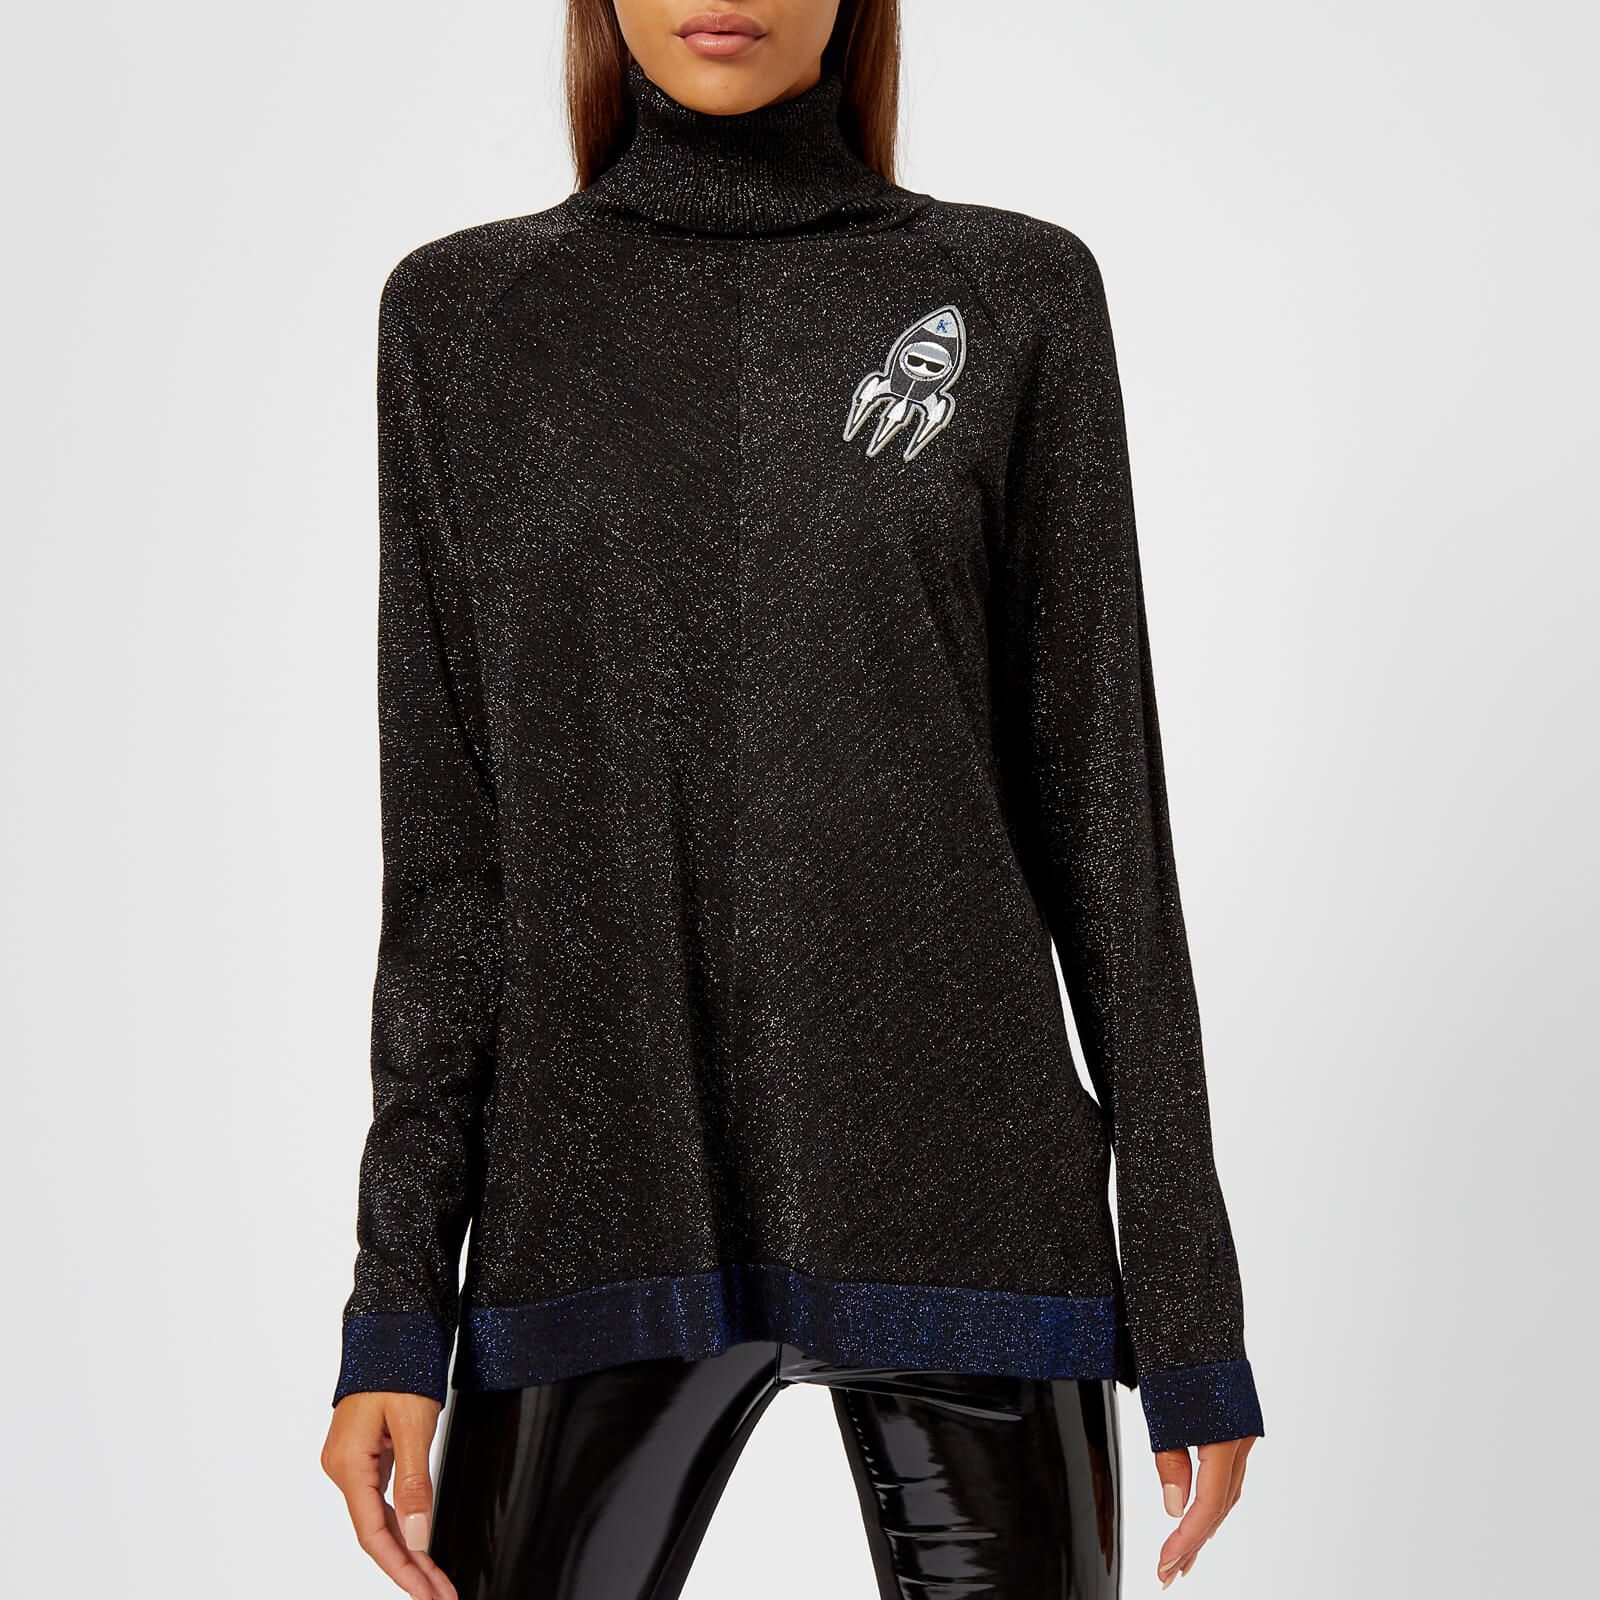 cb5a812d1b Karl Lagerfeld Women s Space Karl Lurex Knitted Jumper with Patches - Black  - Free UK Delivery